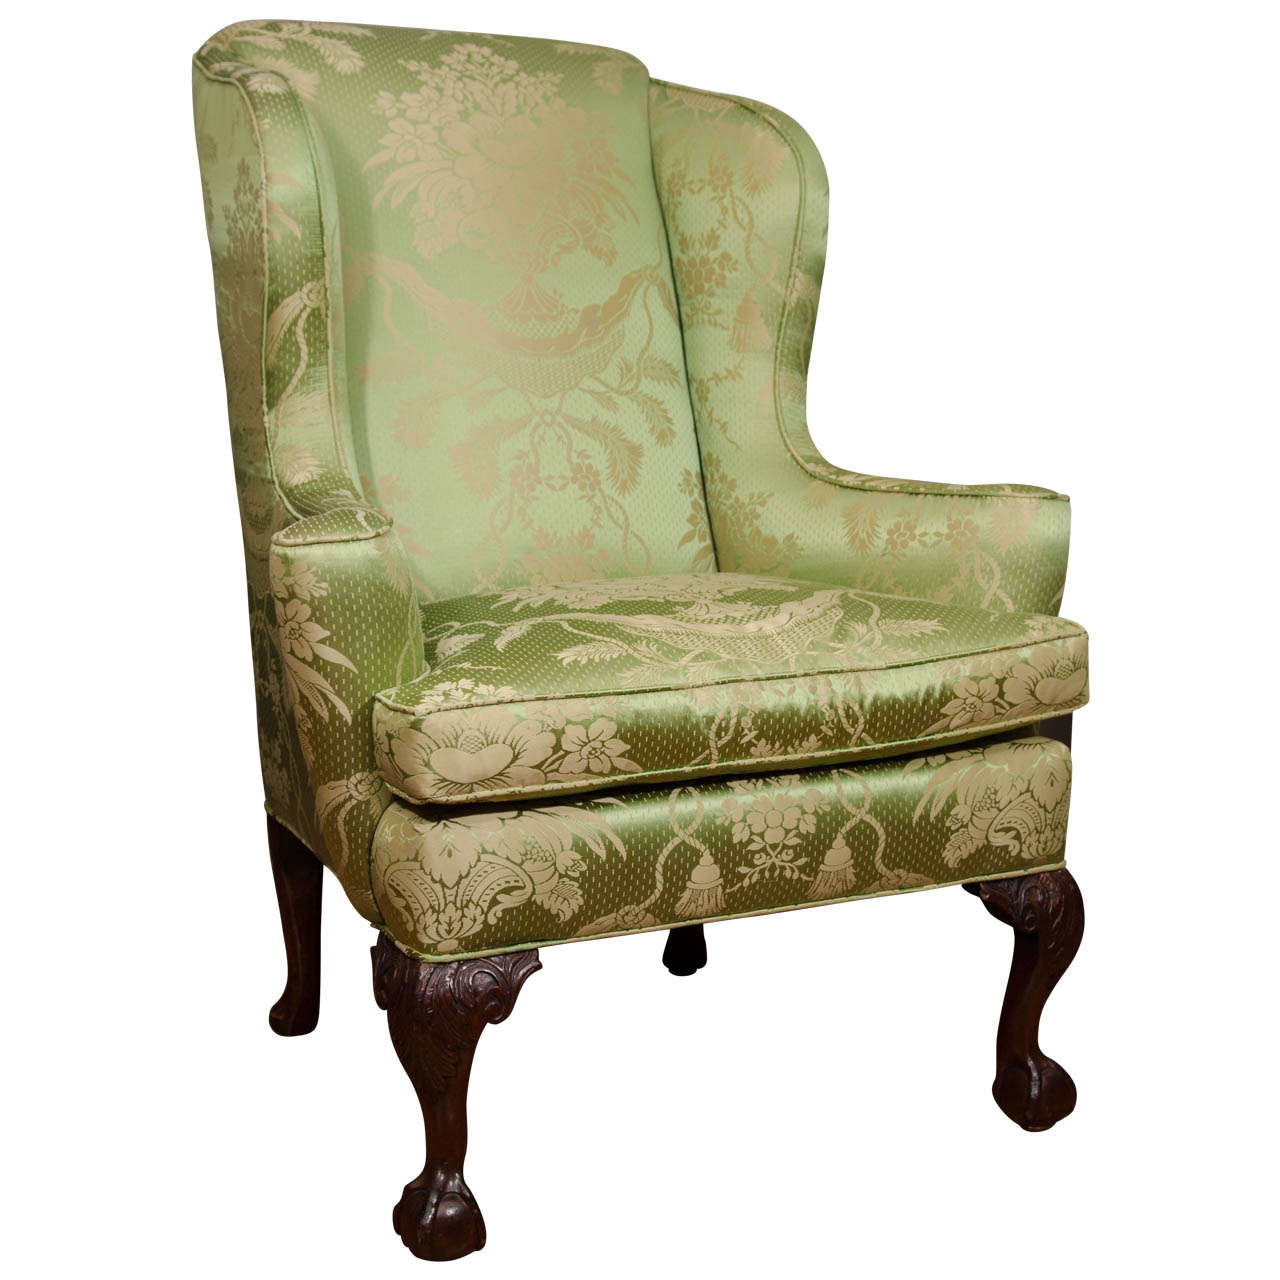 18th Century Walnut Wing Chair For Sale